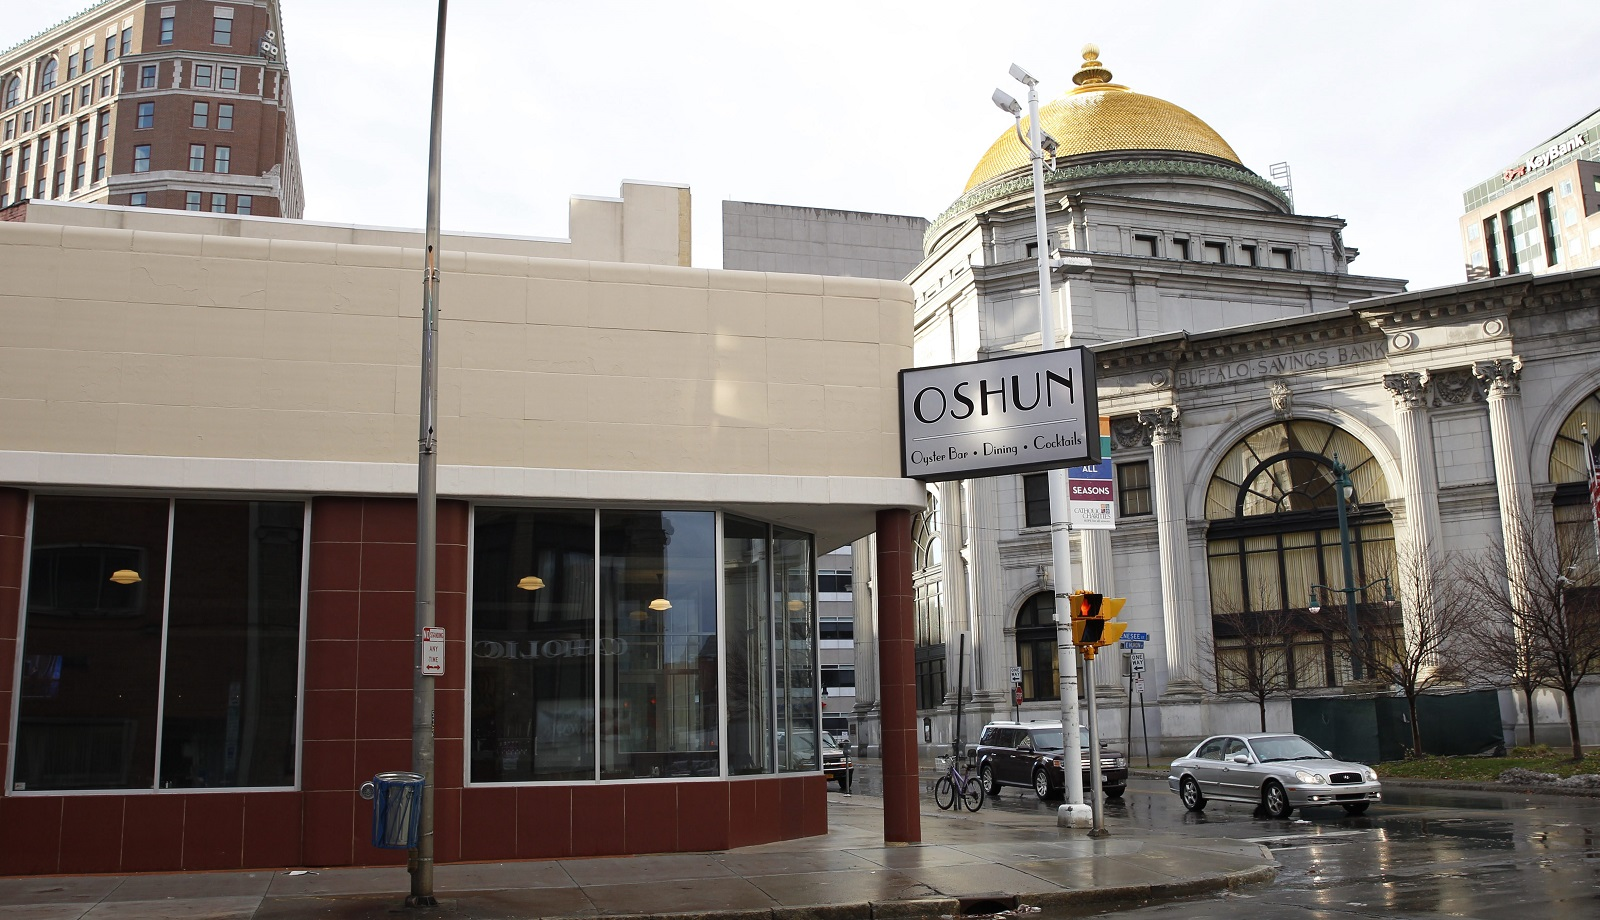 Oshun opened in downtown Buffalo in late summer 2014. (Sharon Cantillon/Buffalo News file photo)